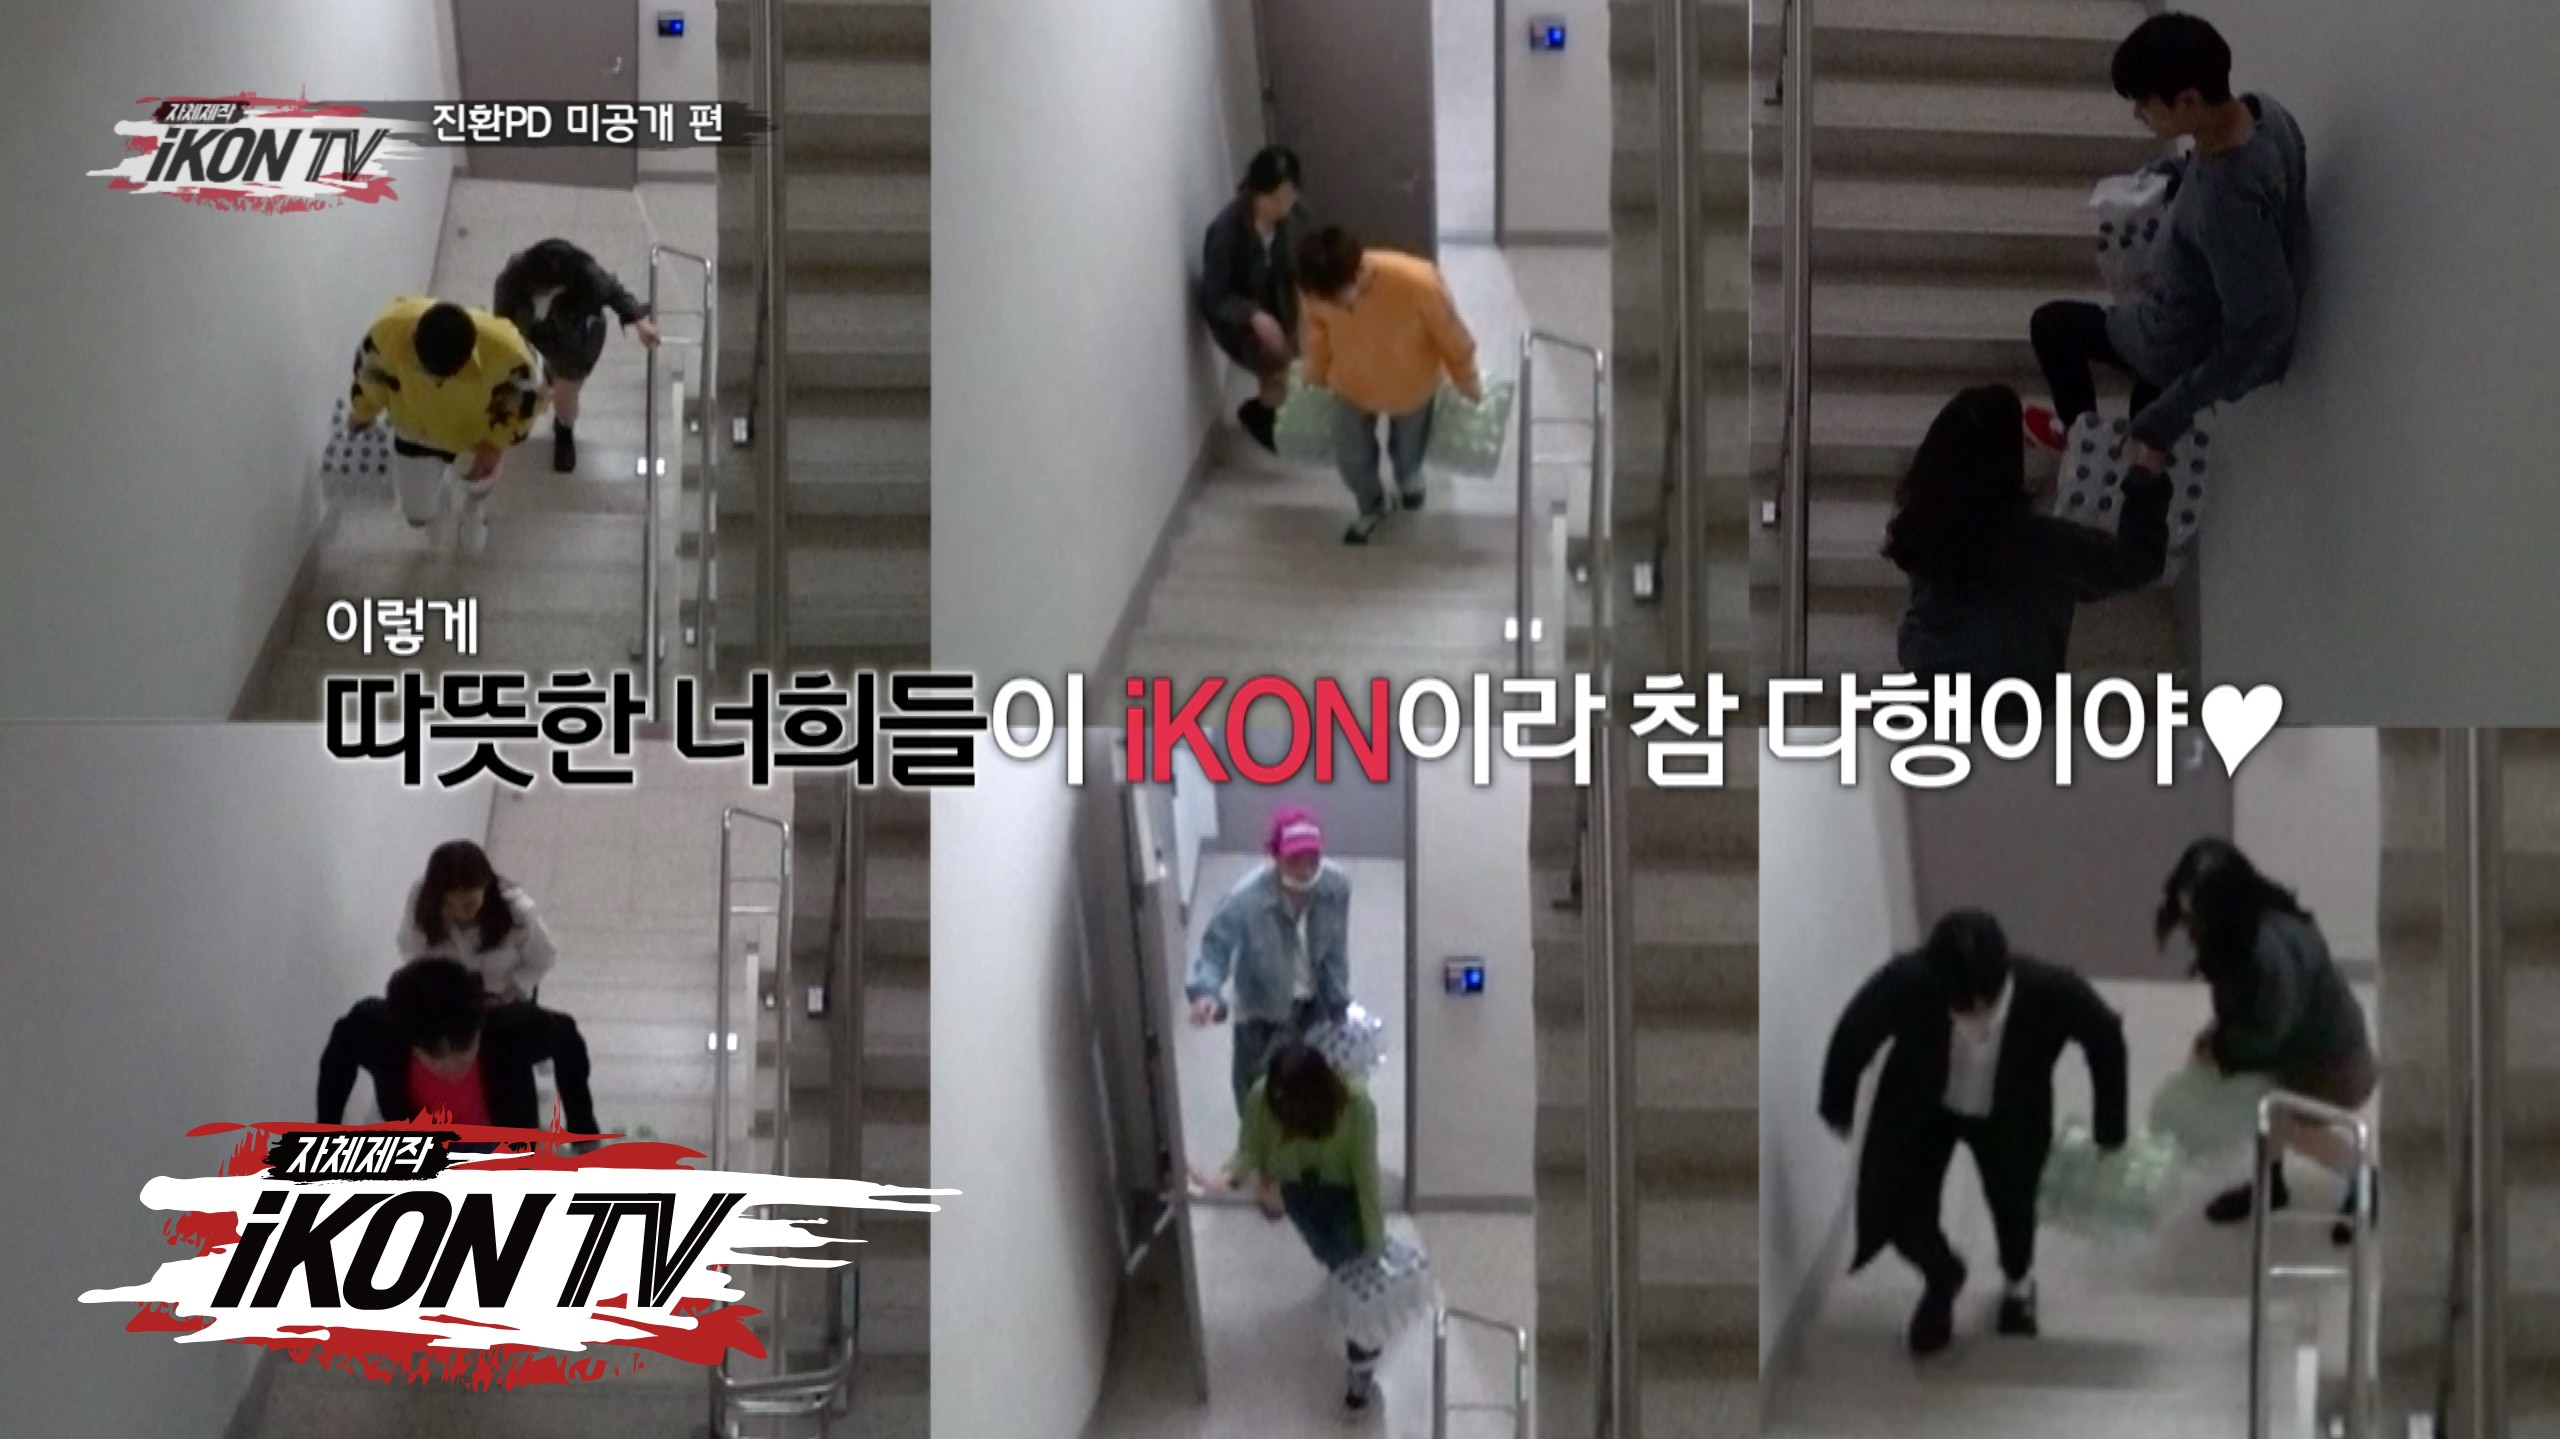 iKON - '자체제작 iKON TV' EP.7 Unreleased Clip